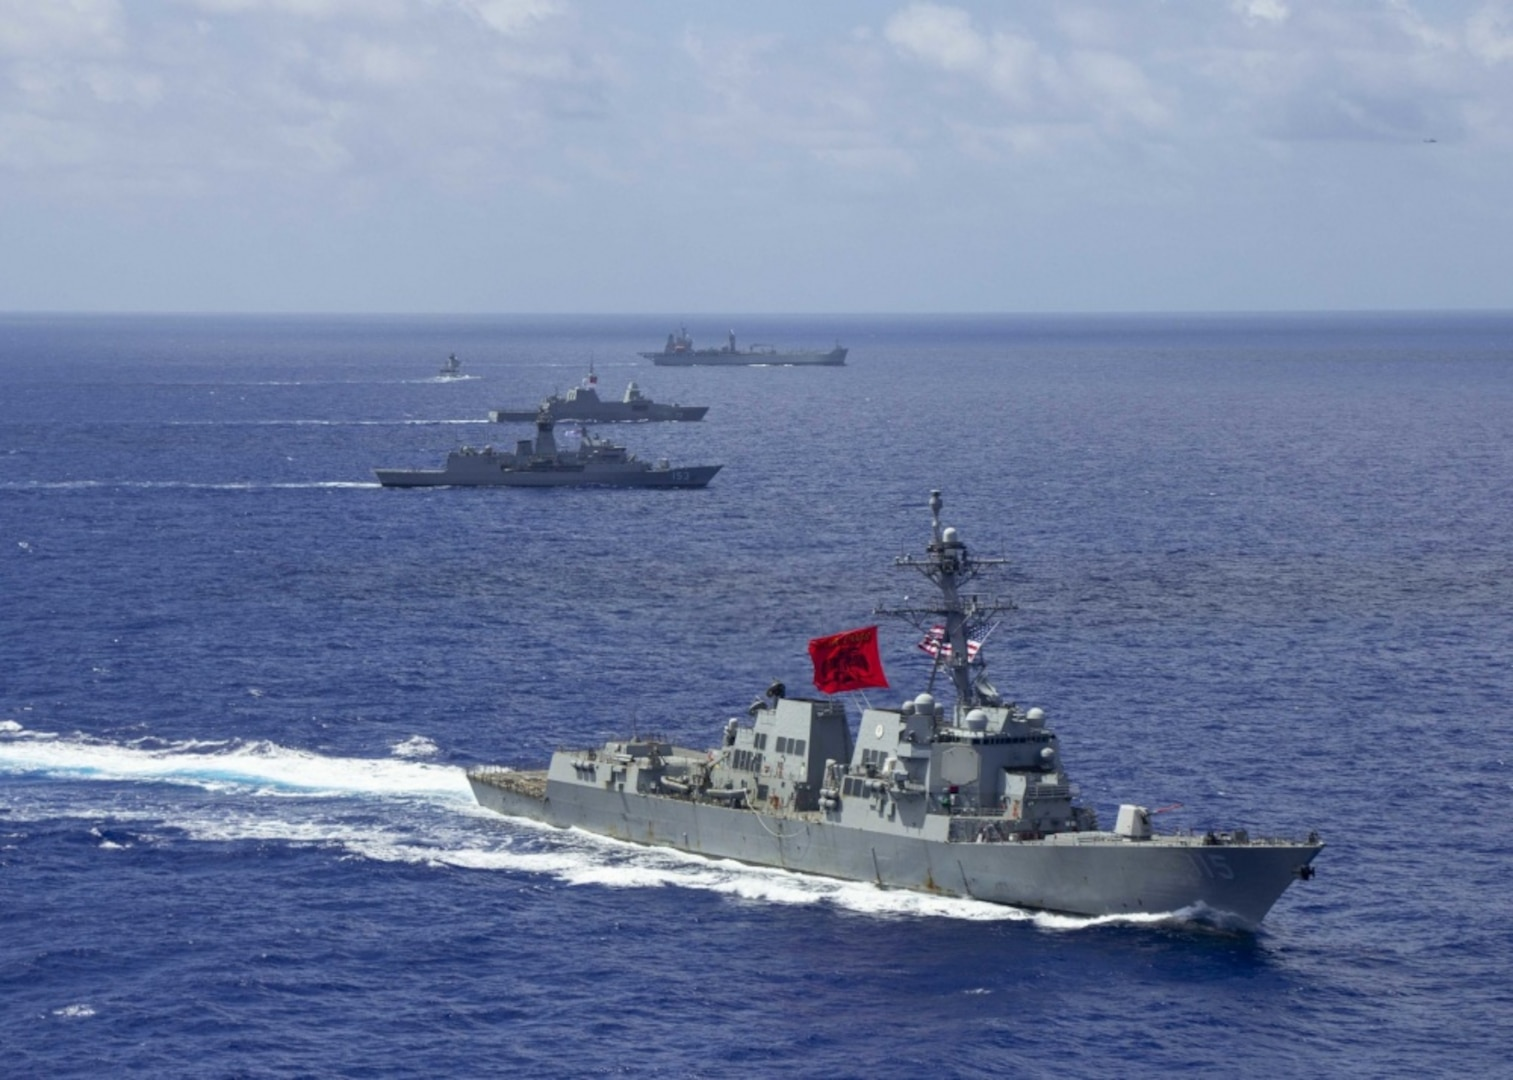 U.S. Warship Joins Partners for Multinational Group Sail